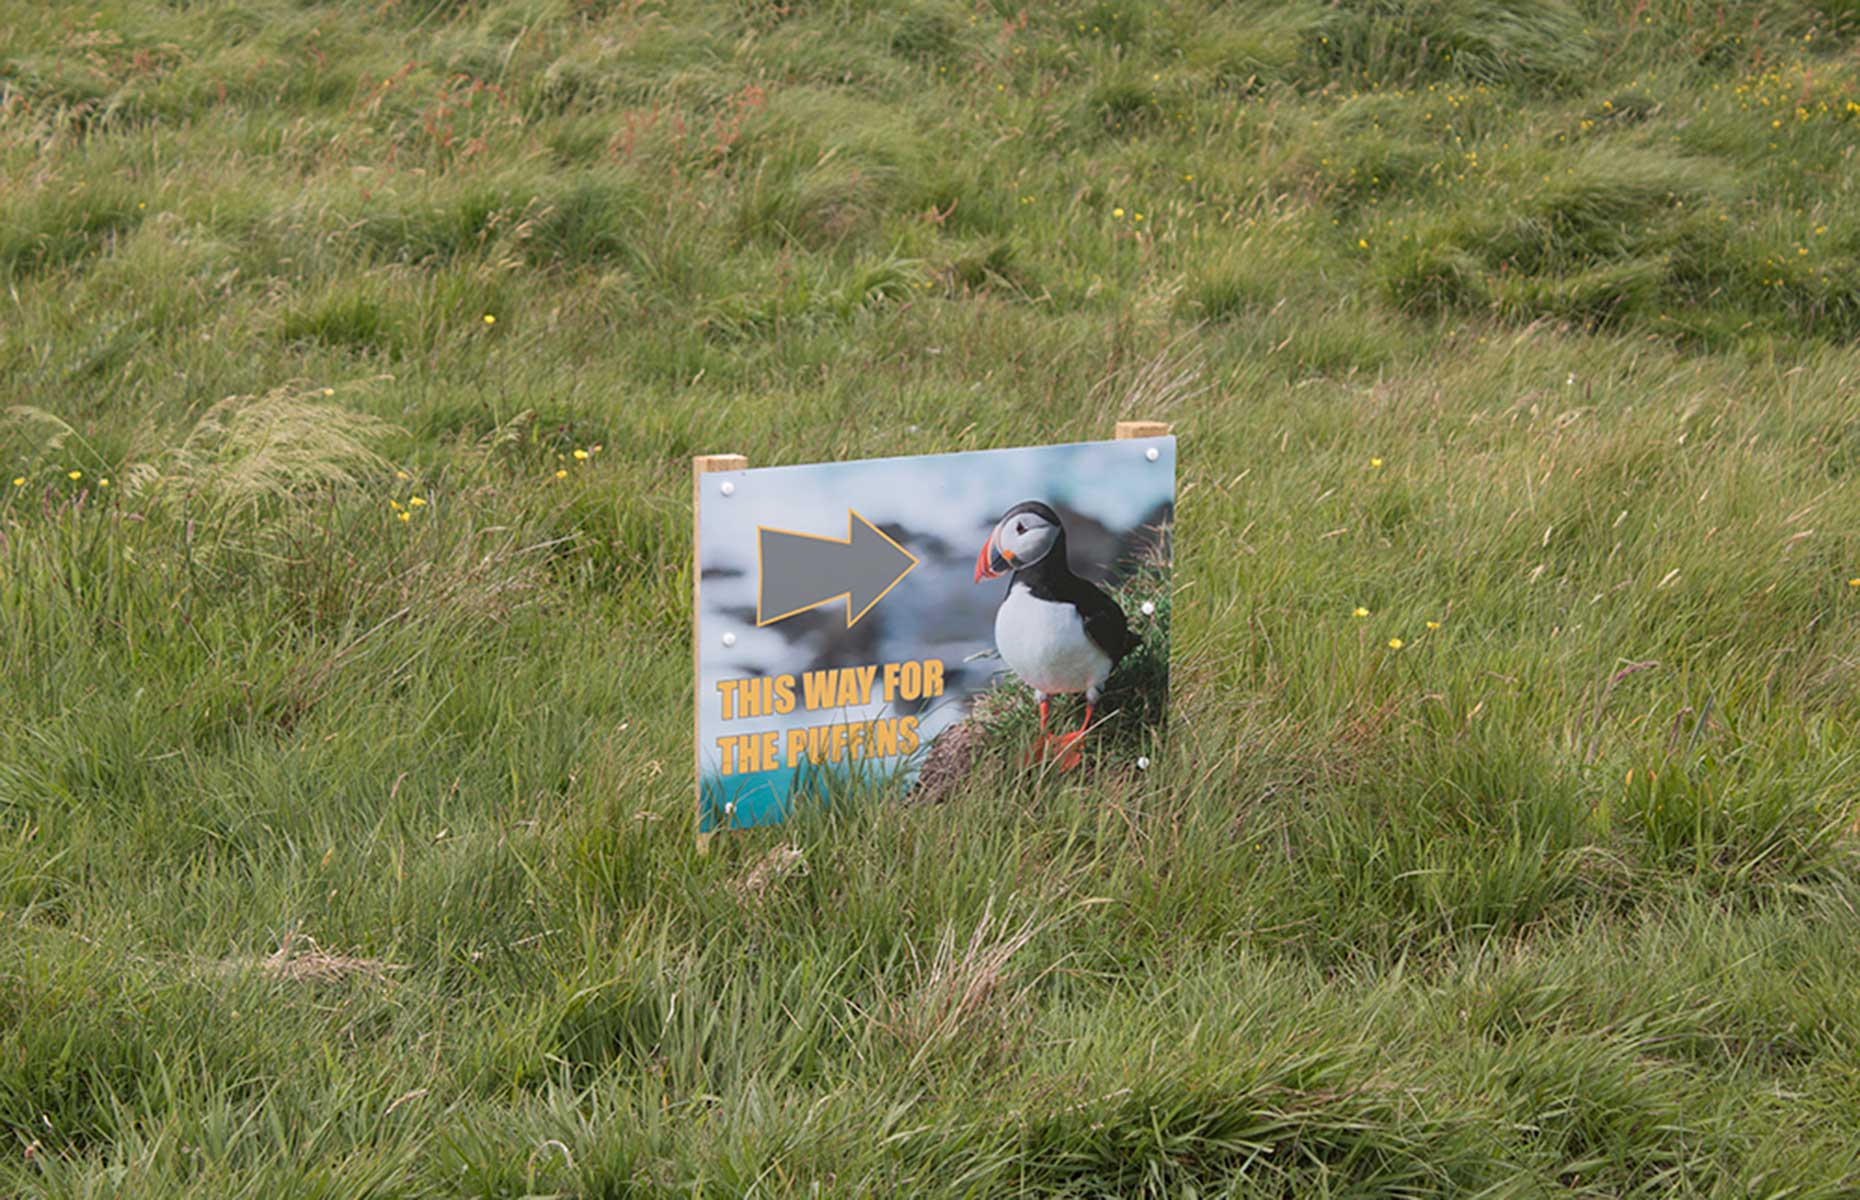 A puffin's this way sign in Staffa, Scotland